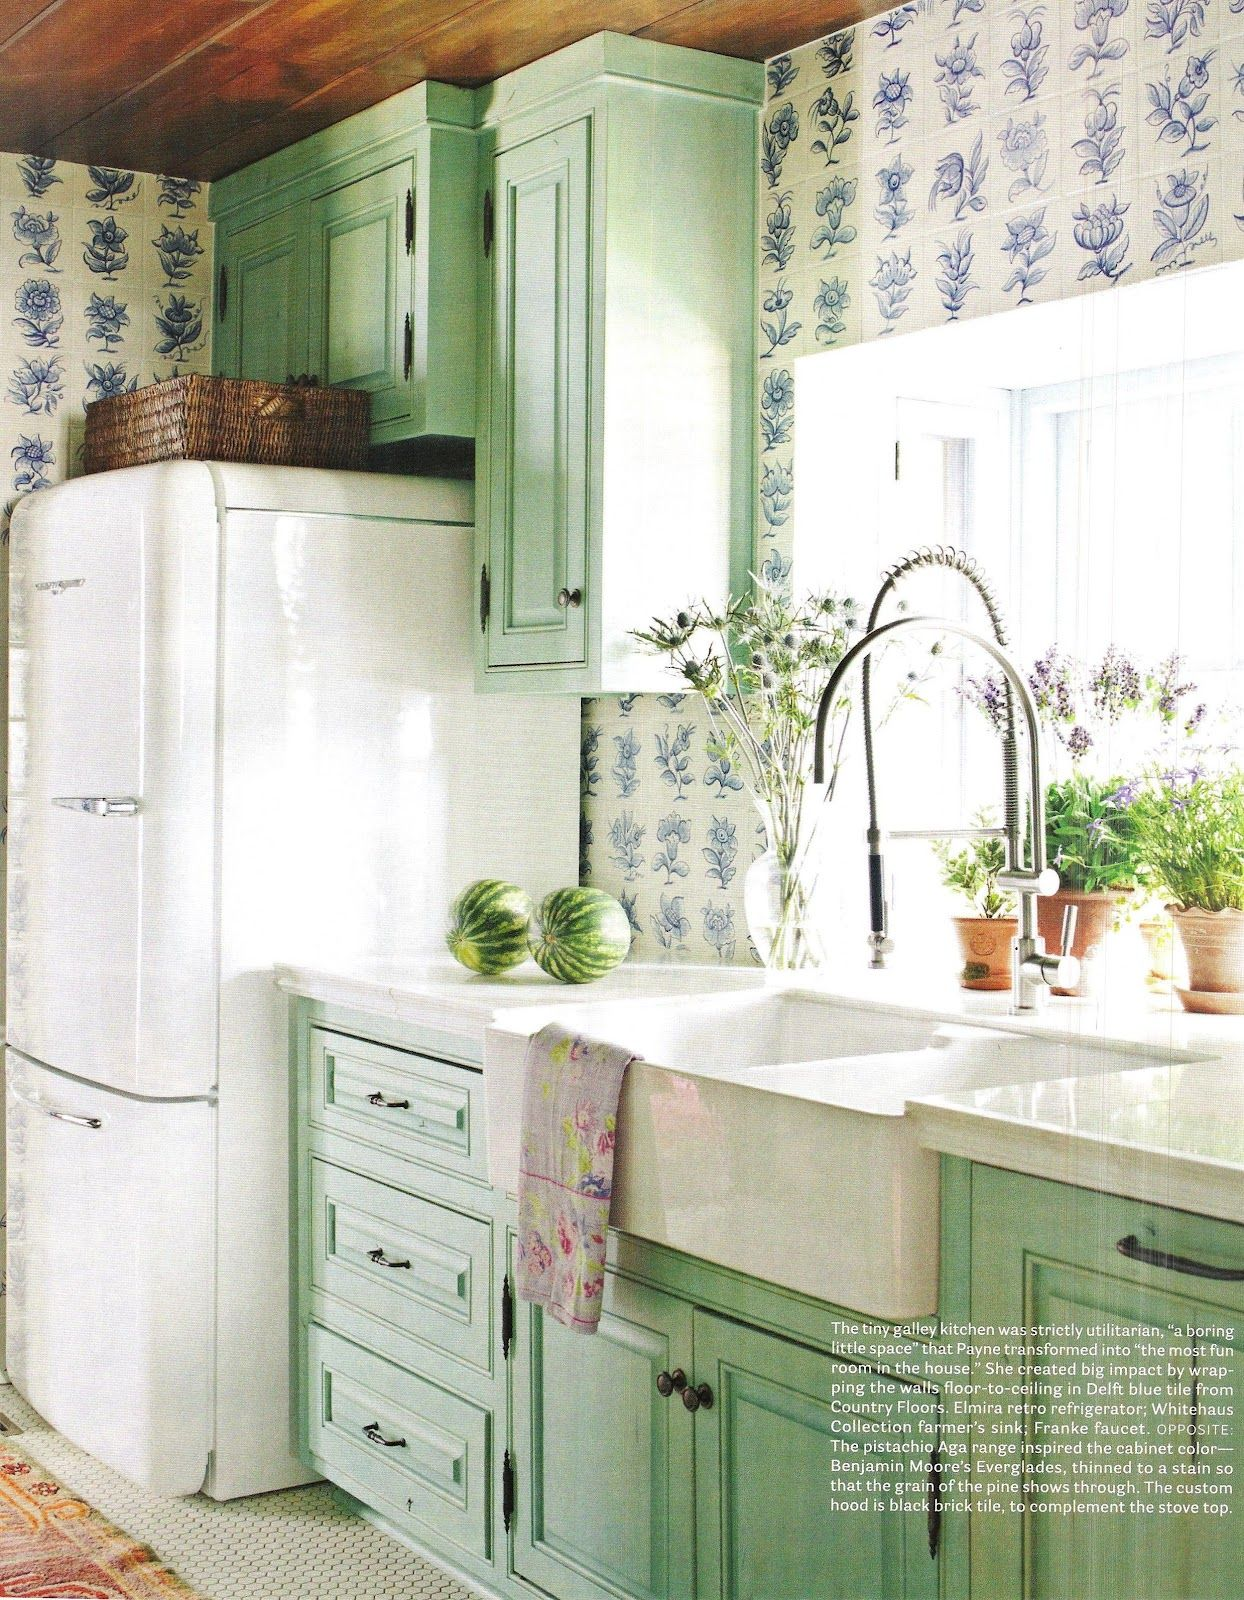 Kitchen Designs And Colors Images Ice Box A Flippen Life 1950 S Kitchen Design Colors I Love In